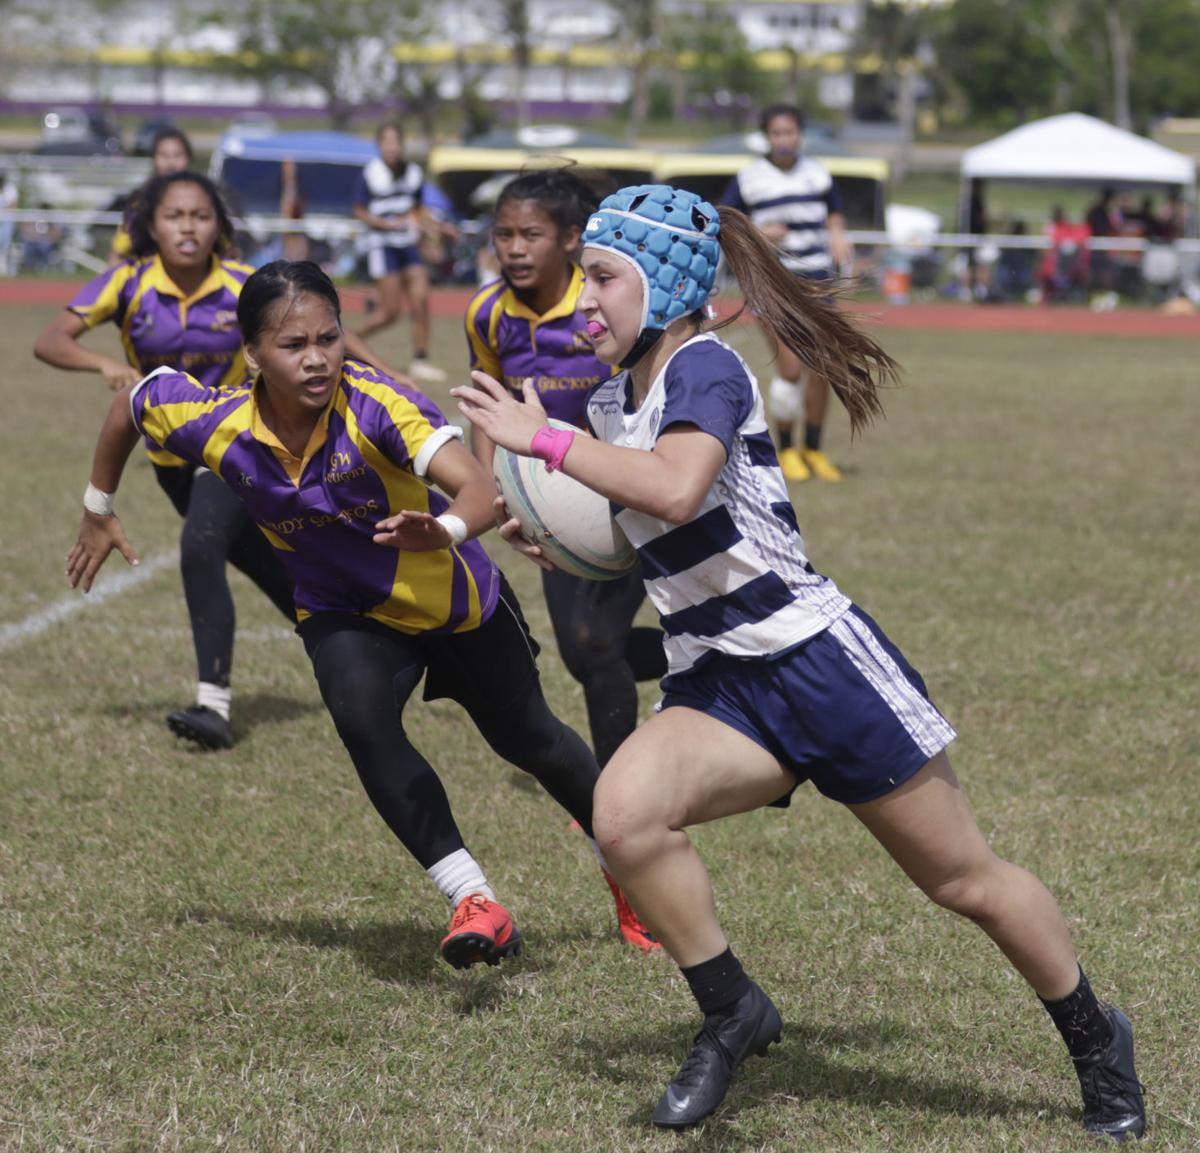 Royals topple Geckos in rugby